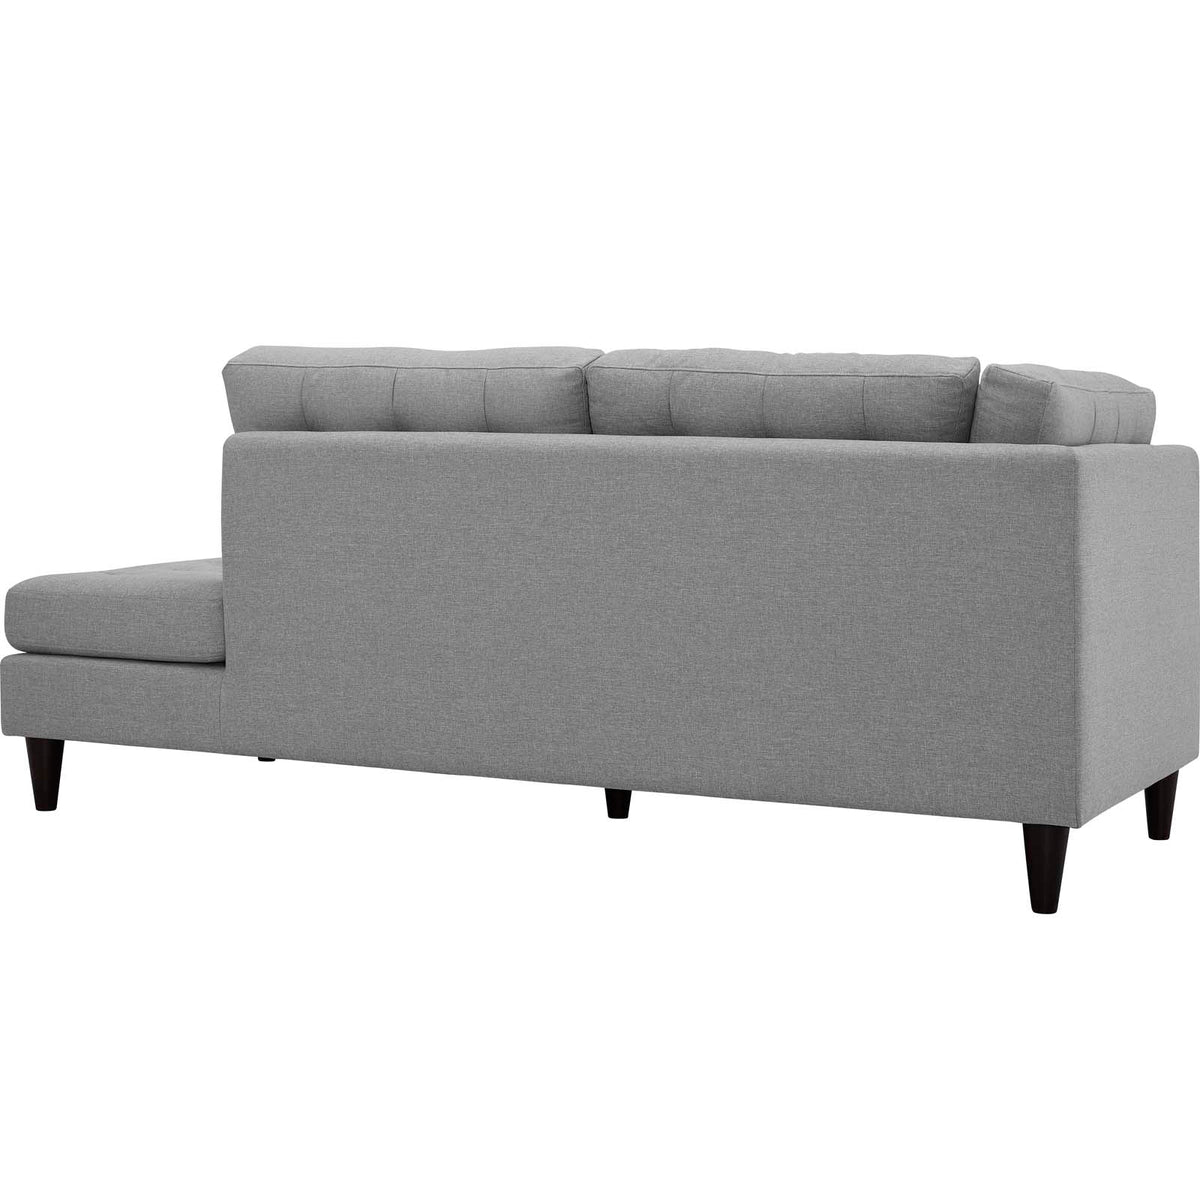 Fresnillo Right Facing Sofa Gray